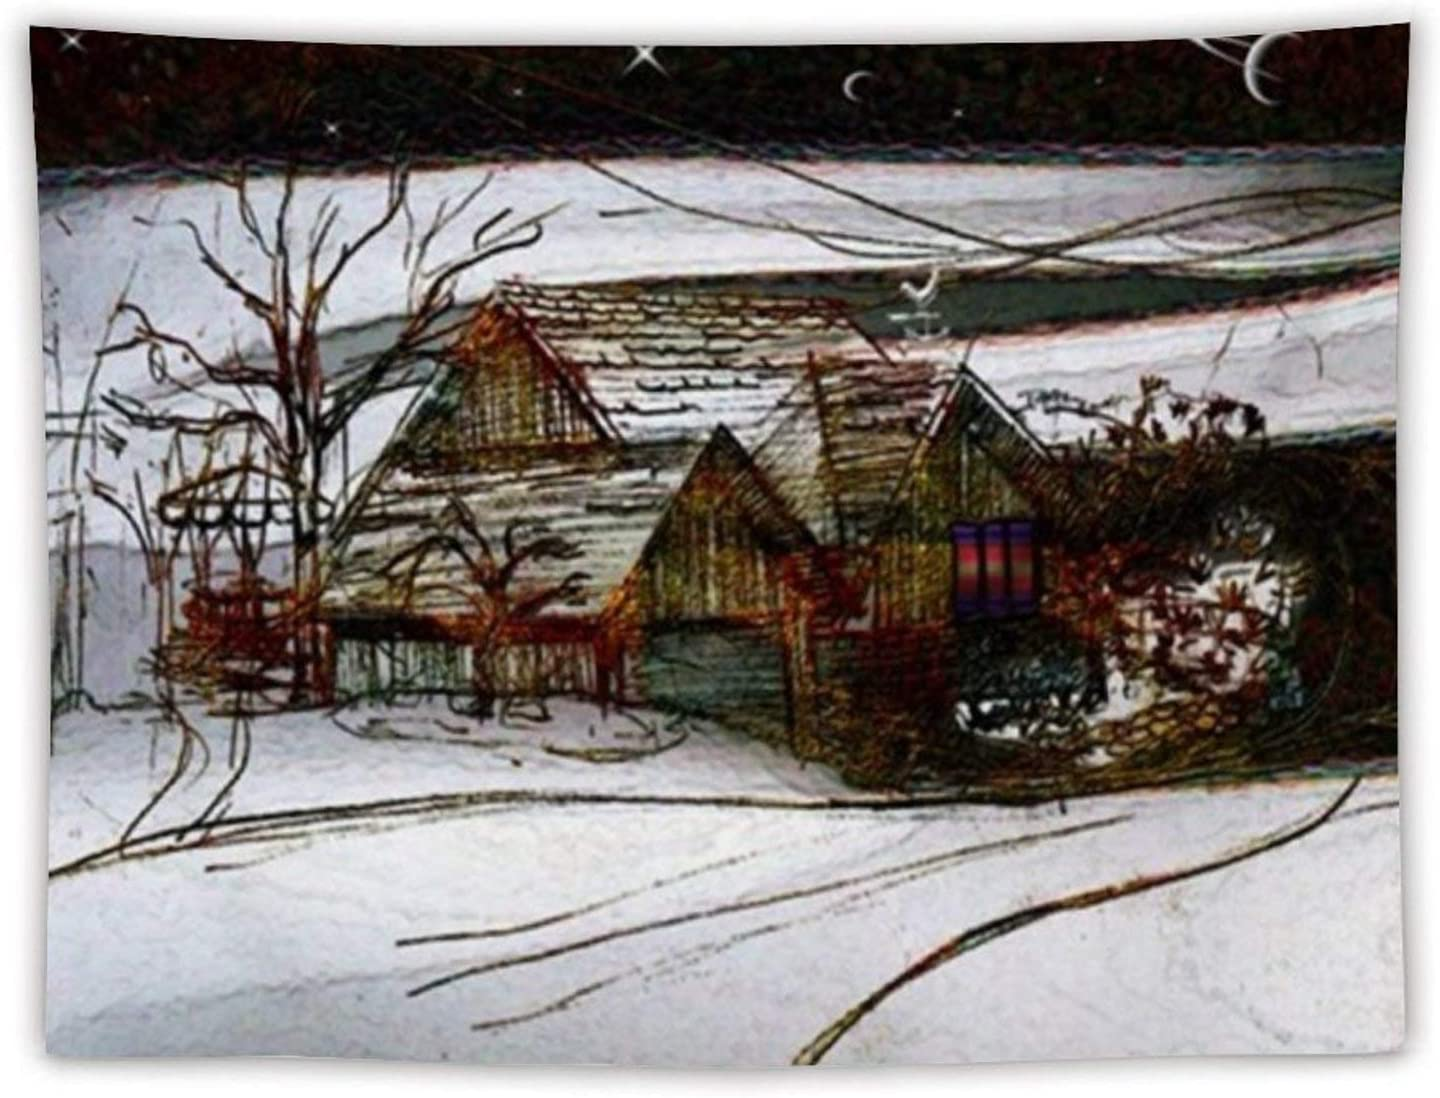 Classic Country Winter Homefront Tapestry Wall Hanging Art Tapestry Wave Tapestries for Bedroom Living Room Home Decoration Home Decor 80x60 inches